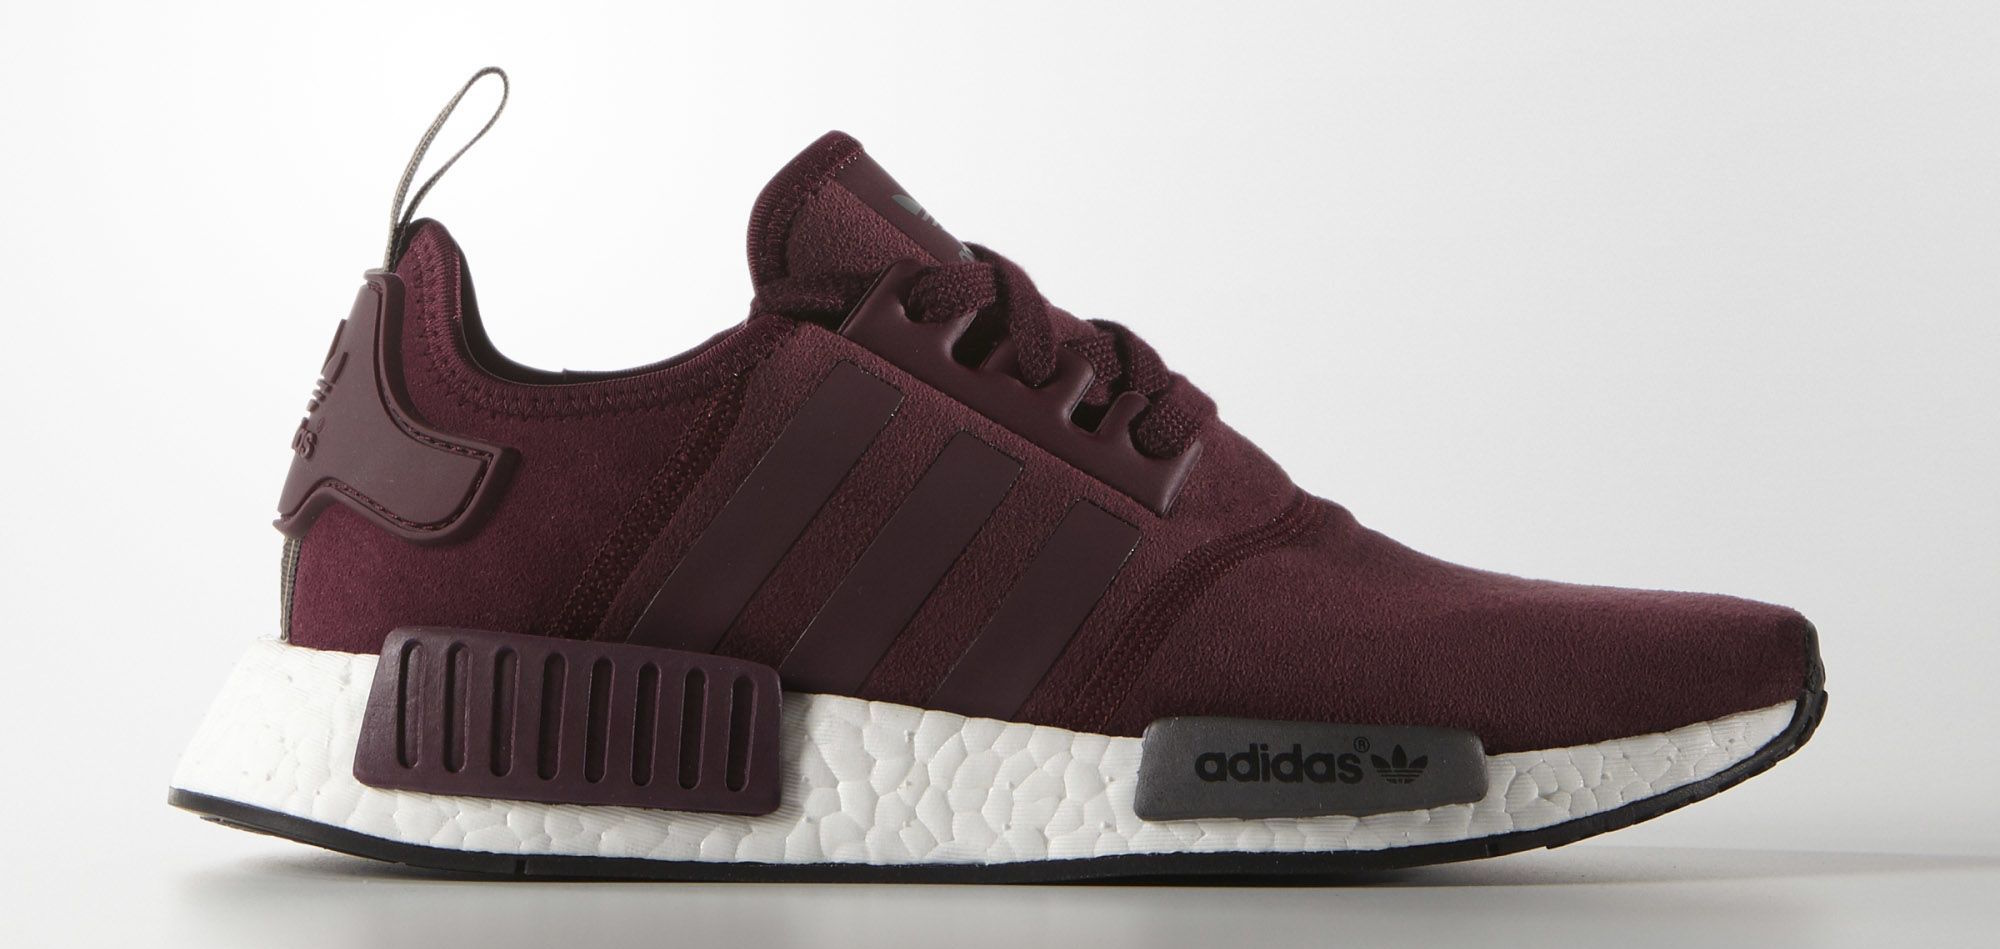 adidas nmd runner maroon adidas yeezy black and gold